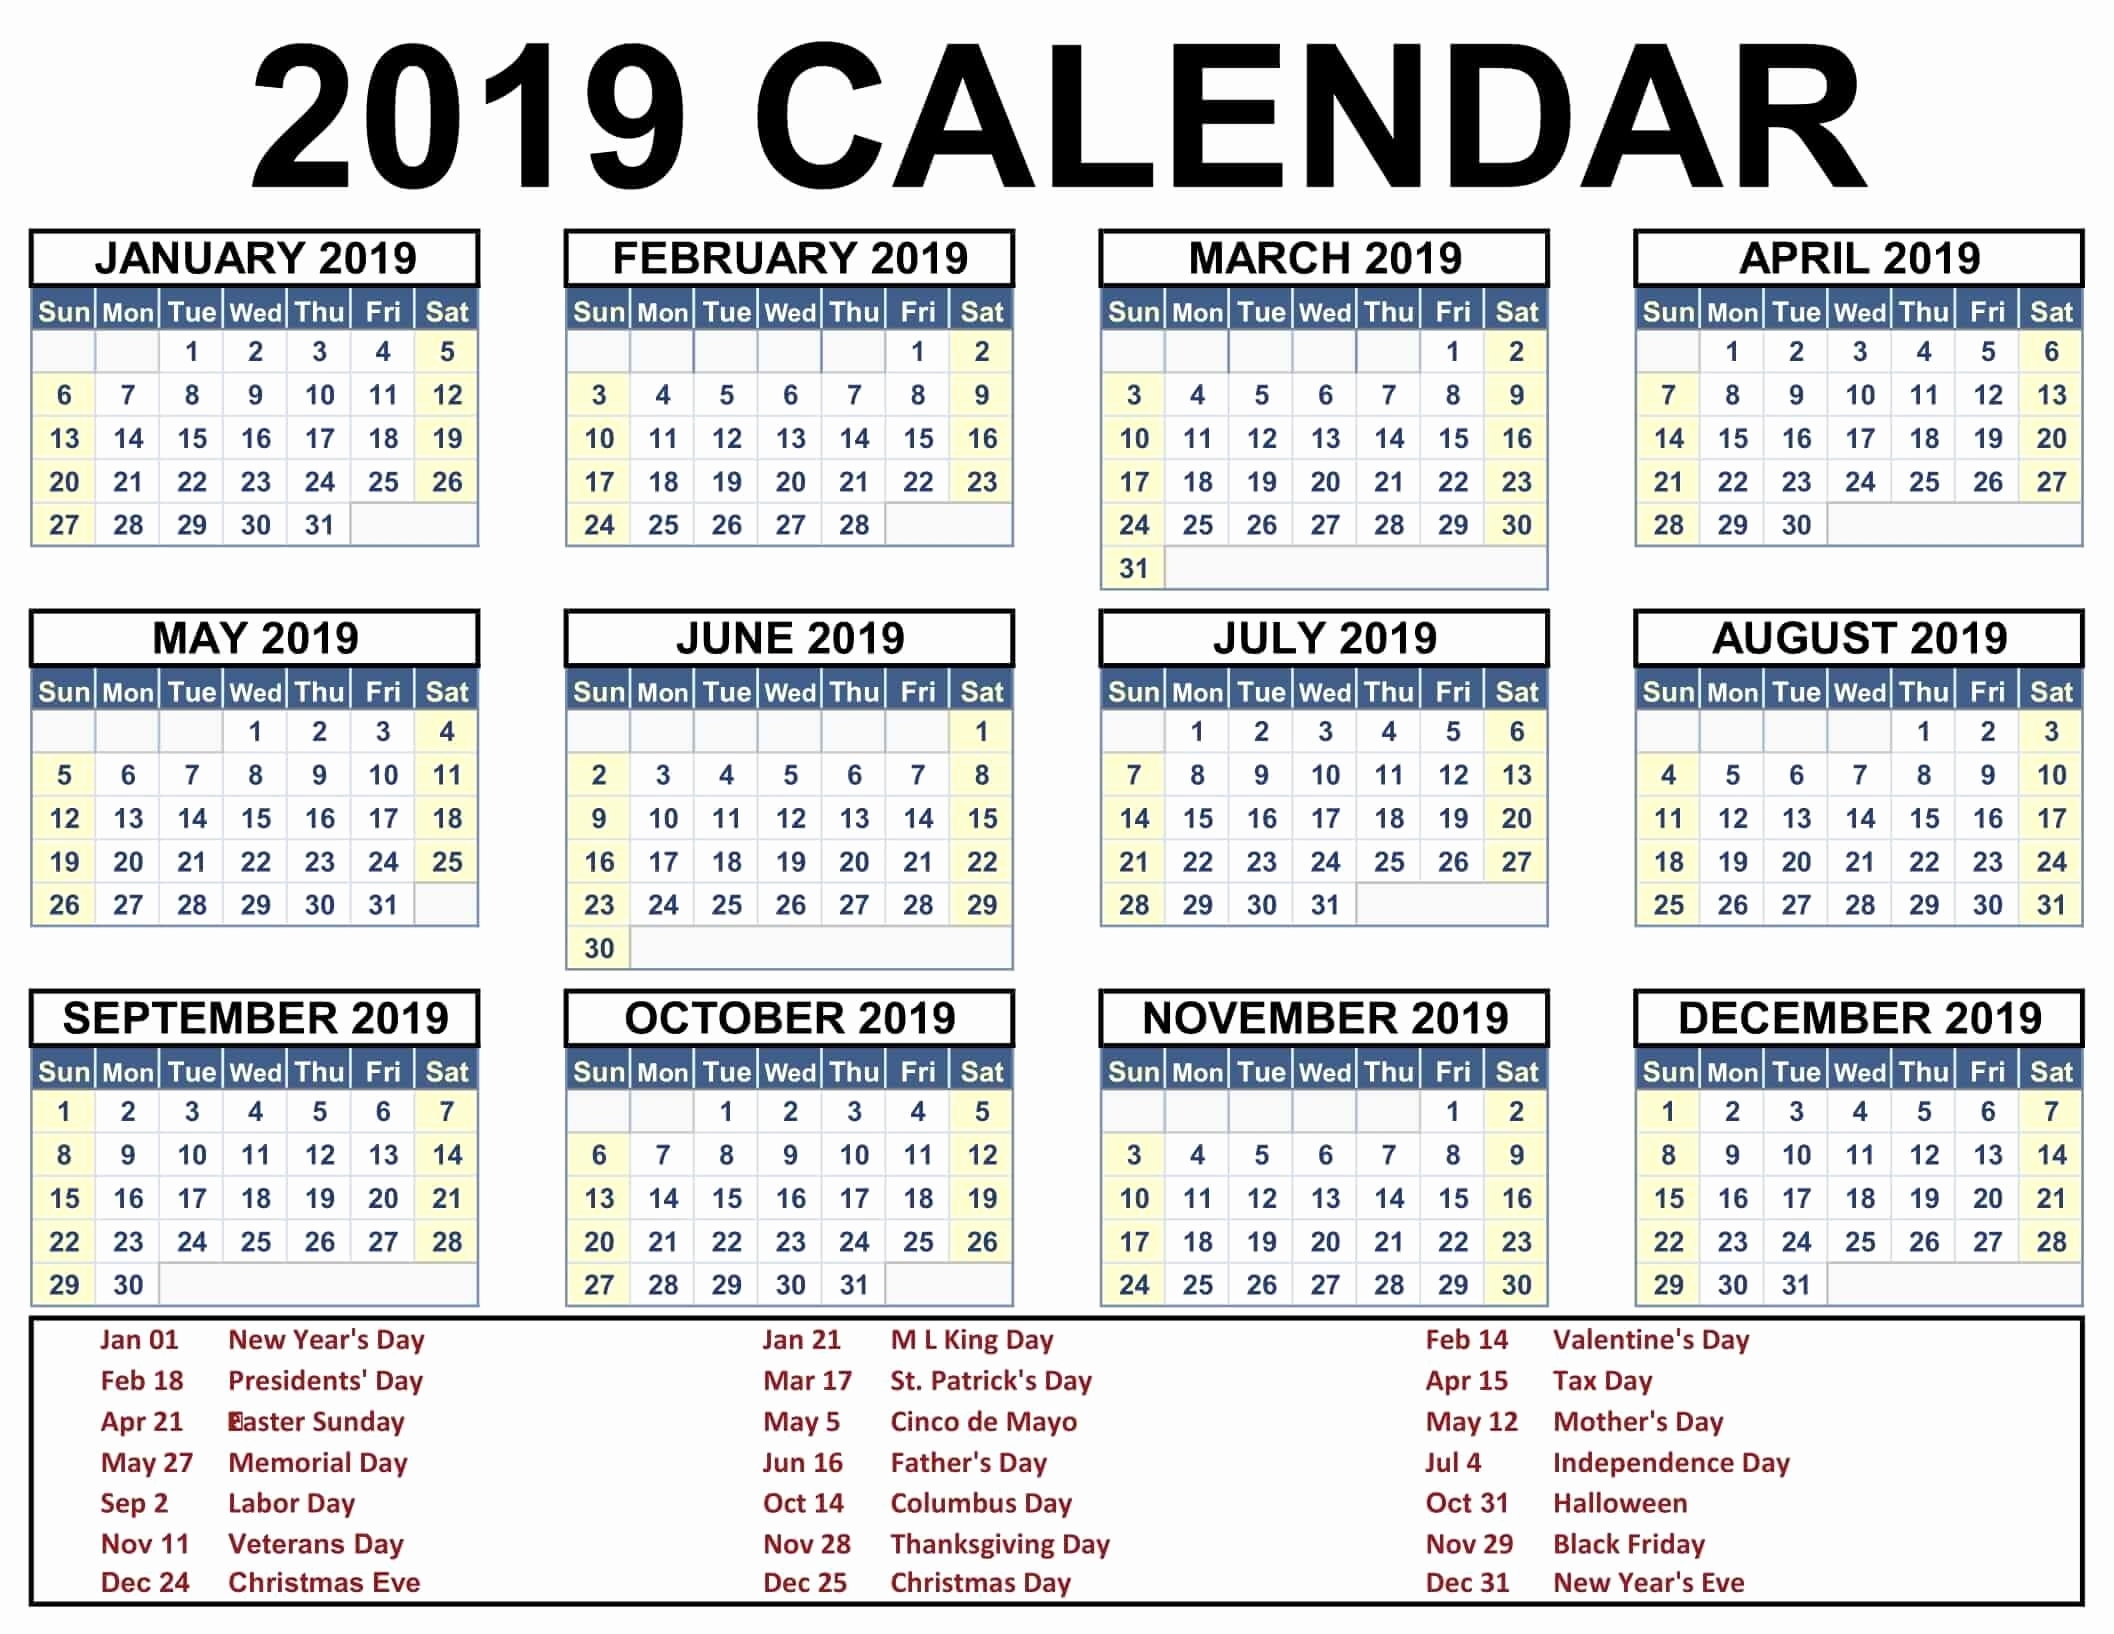 Luxury 32 Examples Hanukkah 2019 2020 Calendar | Etxettipia throughout 2019-2020 Hebrew Calendar